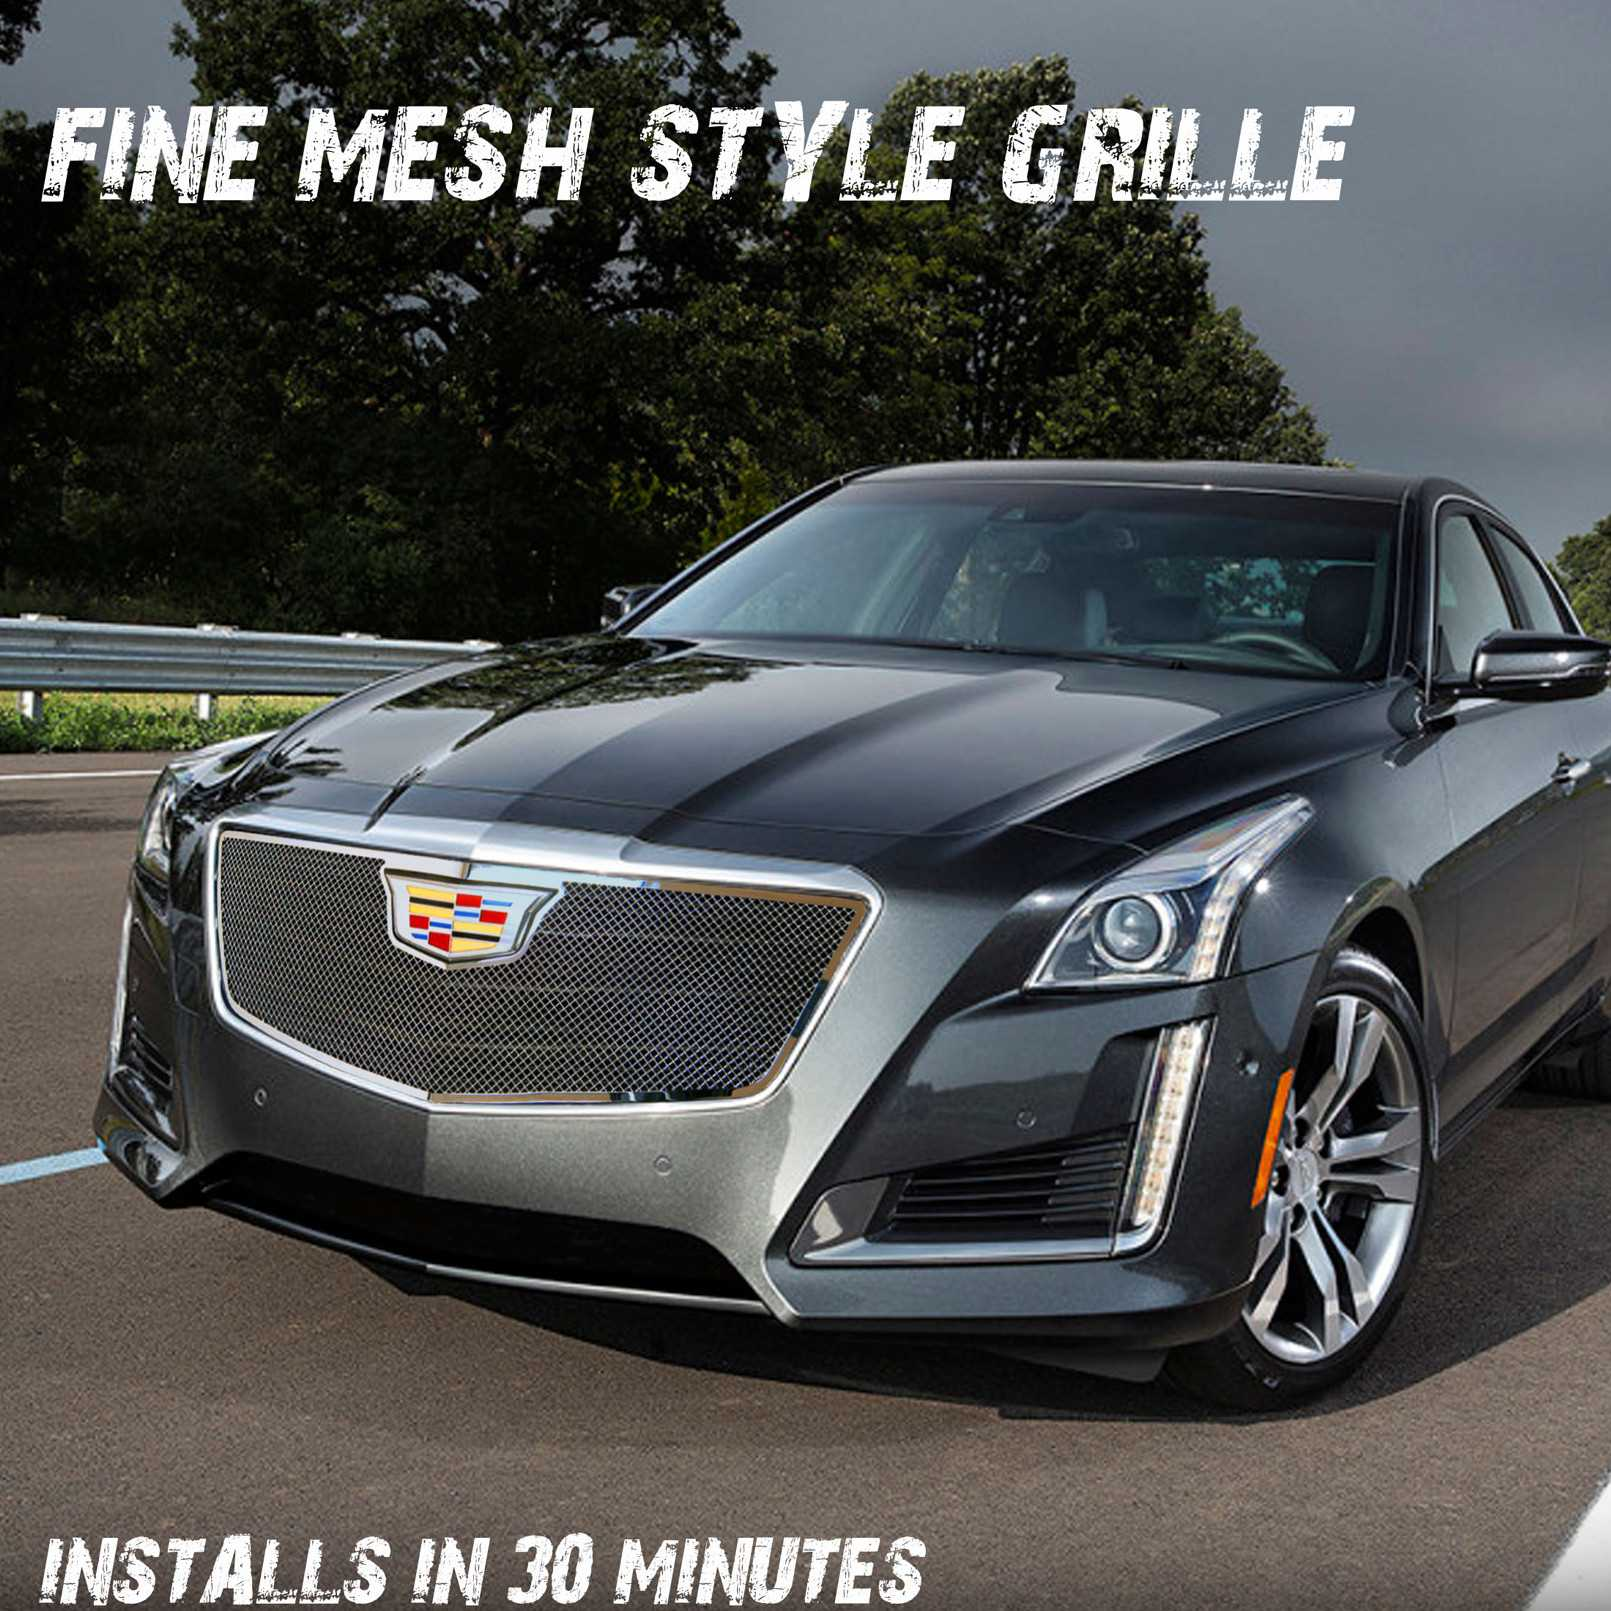 E g classics 2015 2016 cadillac cts grille classic fine mesh grille upper only 1007 010u 15o